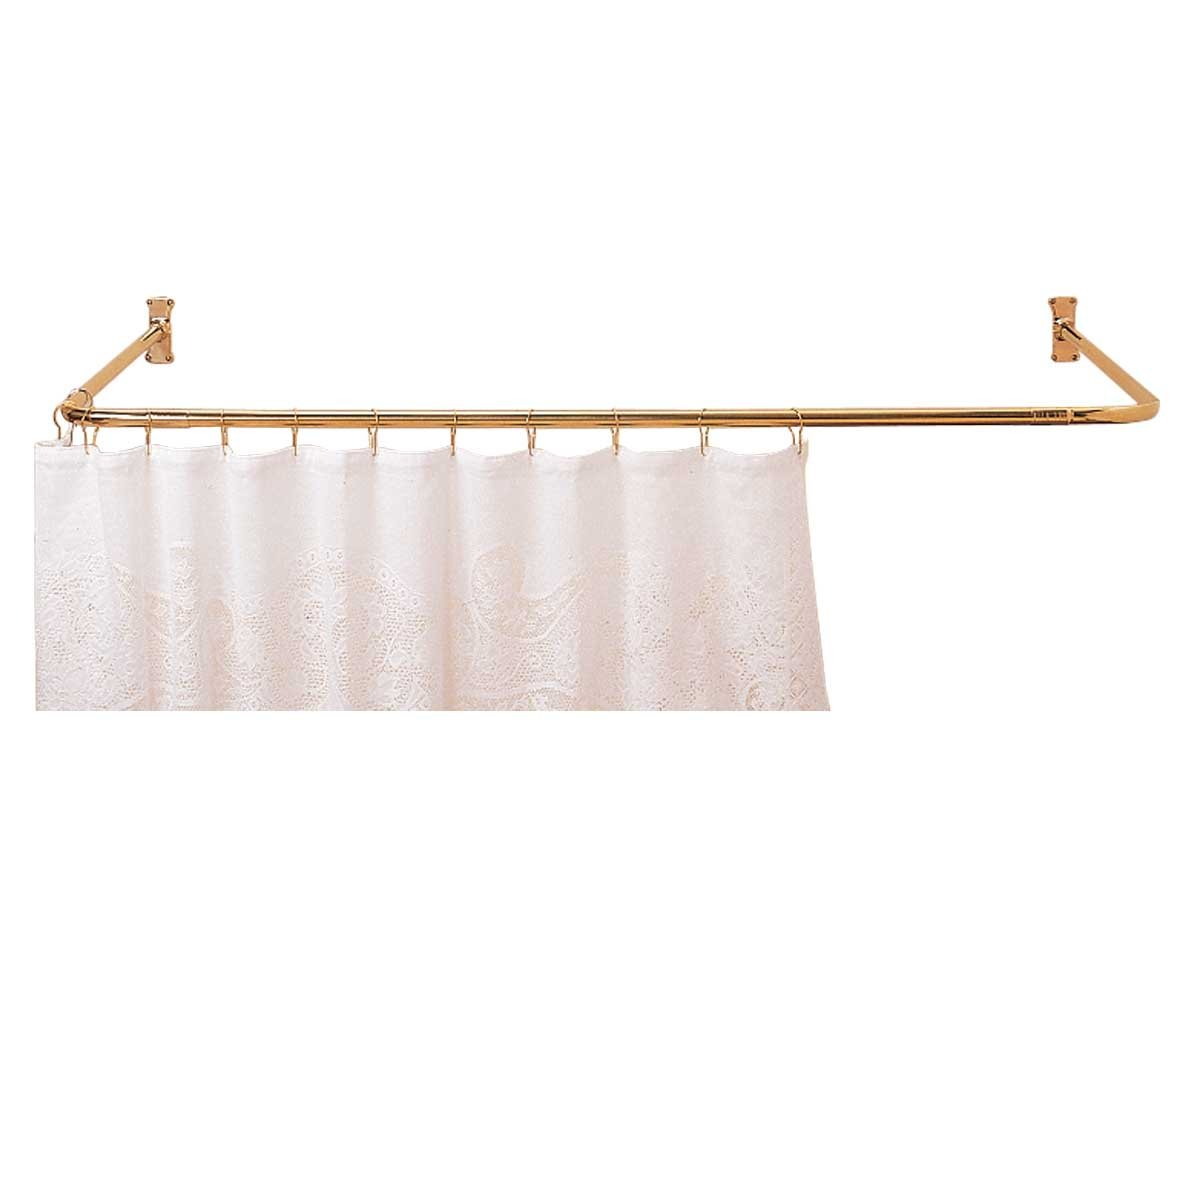 Amazon.com: Shower Curtain Rod Bright Solid Brass 3 Sided ...